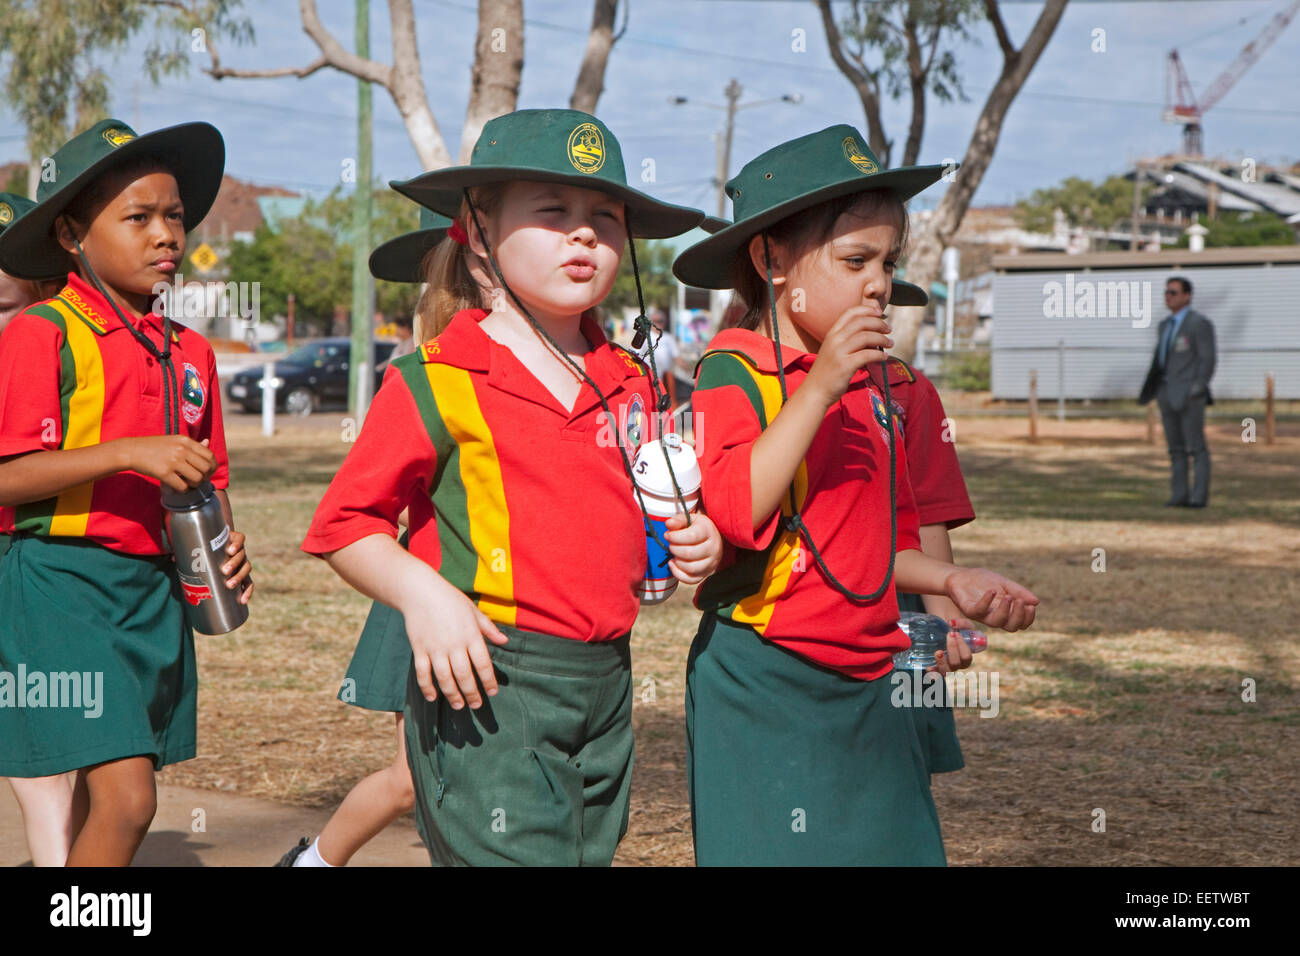 Little girls dressed in school uniforms at Mount Isa, Gulf Country region of Queensland, Australia - Stock Image